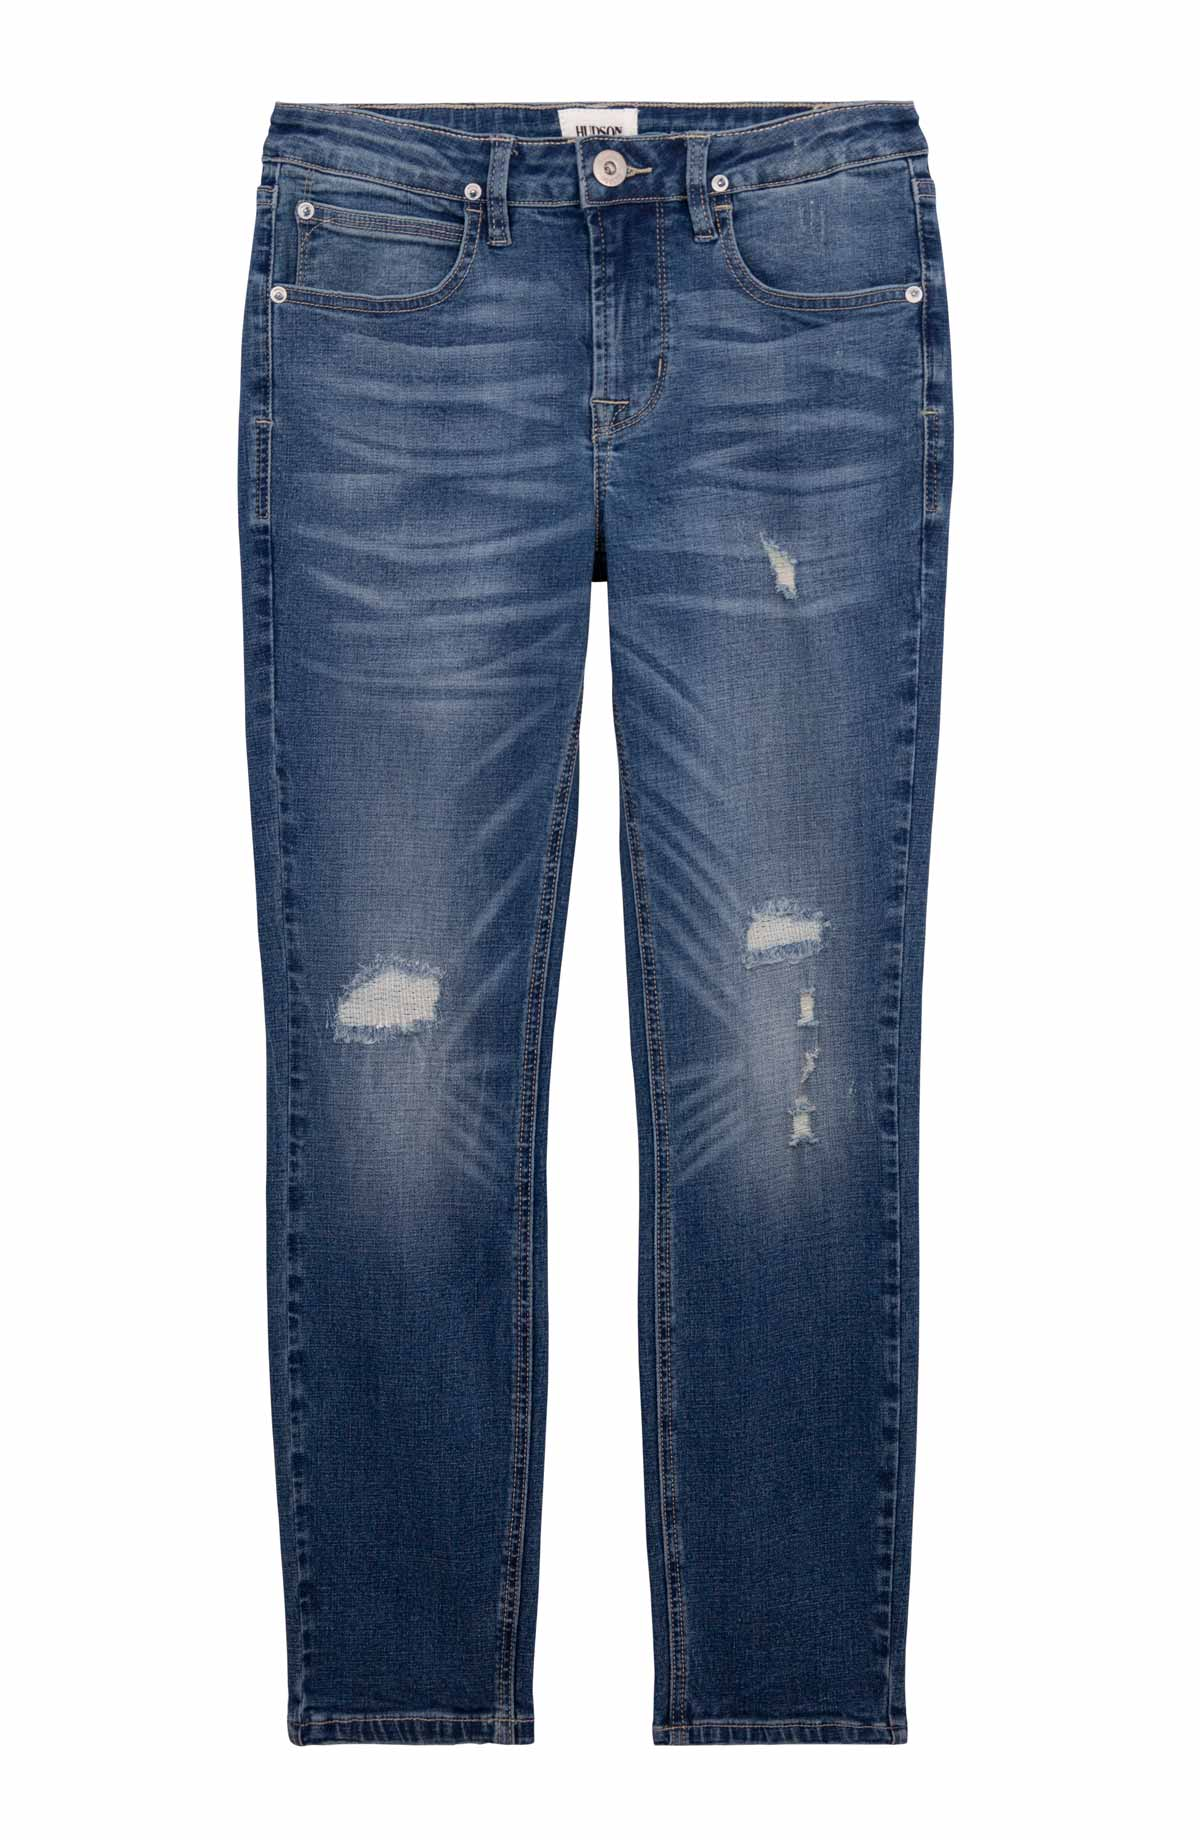 Big Boys Jagger French Terry Jean, Sizes 8-18